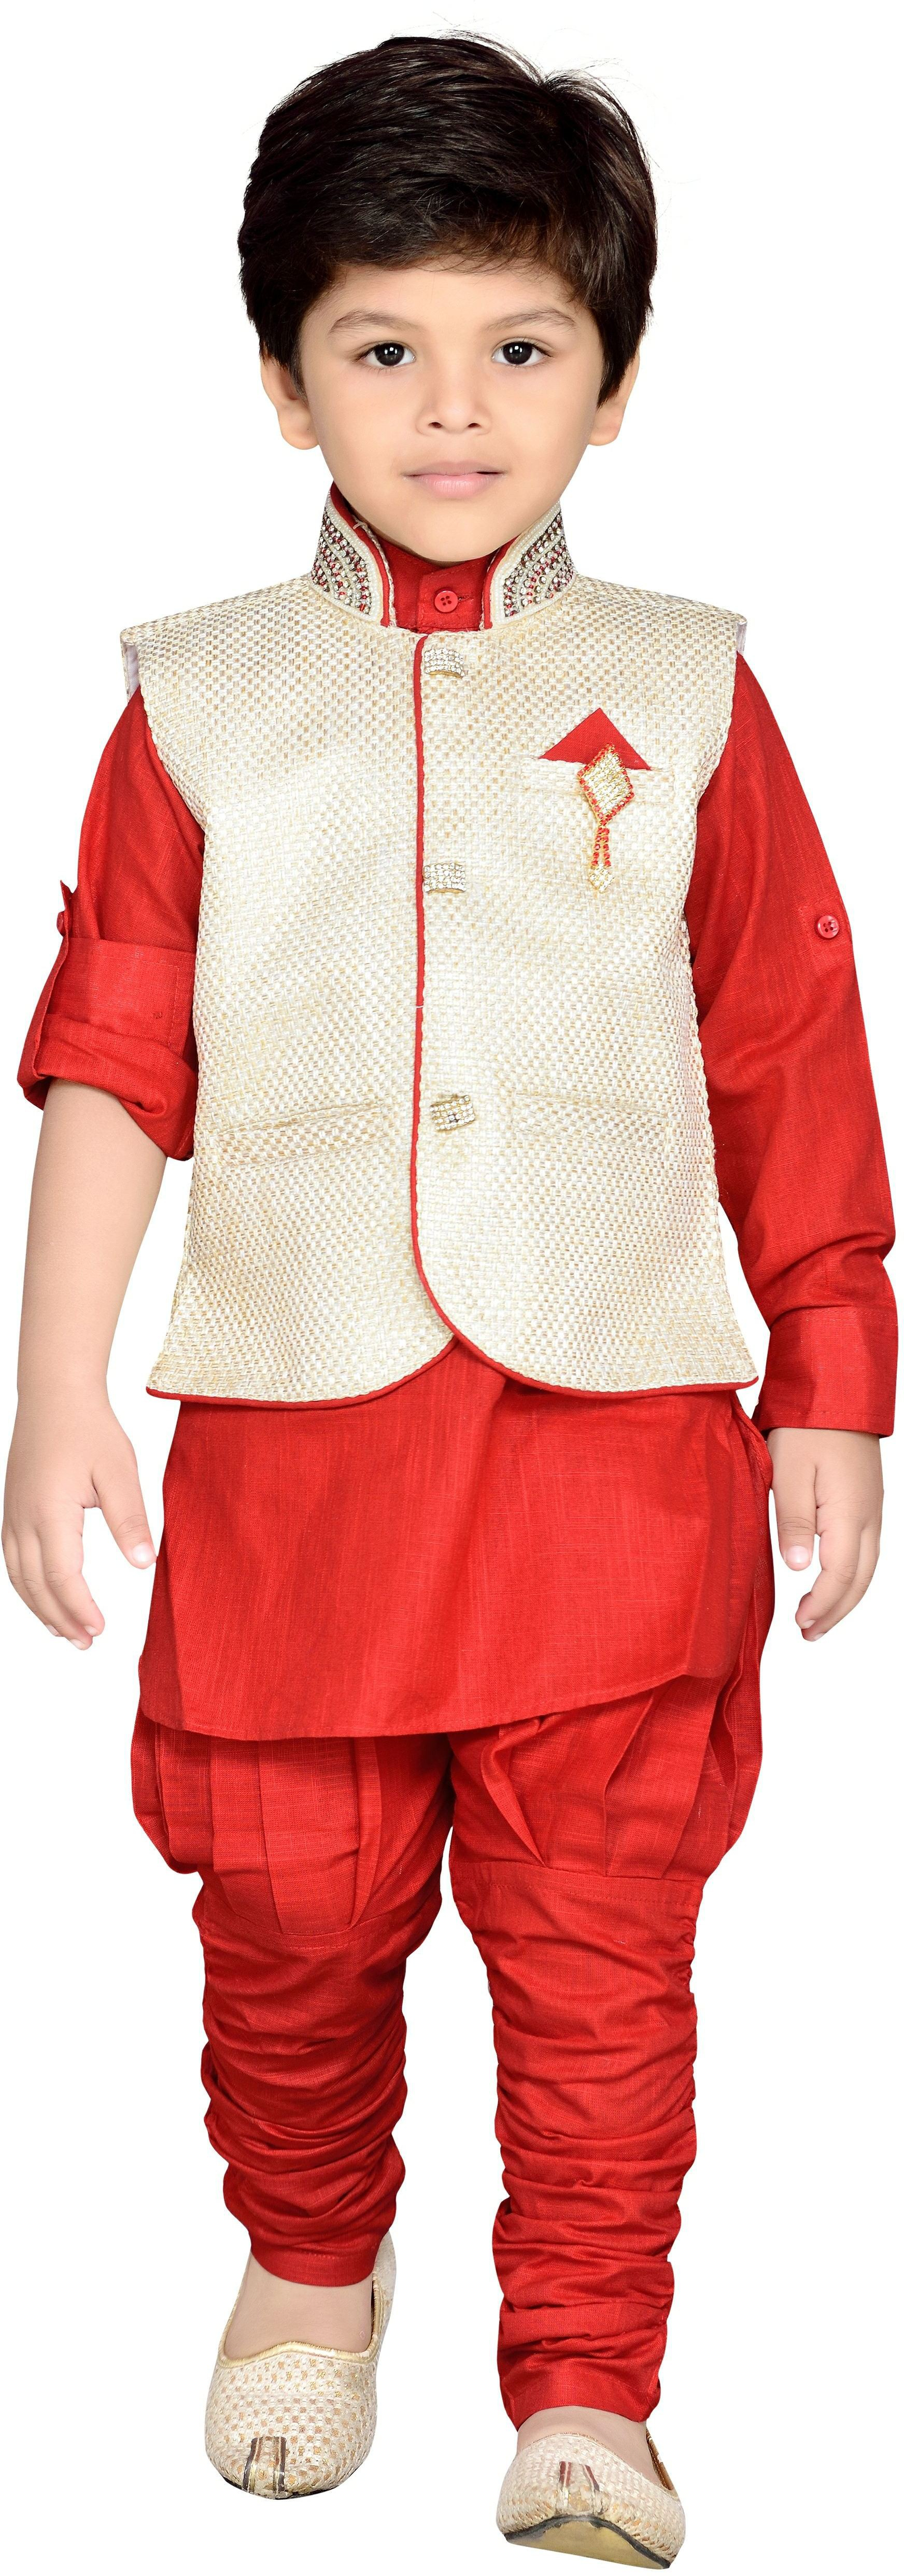 Deals | Flipkart - Kids Ethnic Wear AJ Dezines, JBN Creati